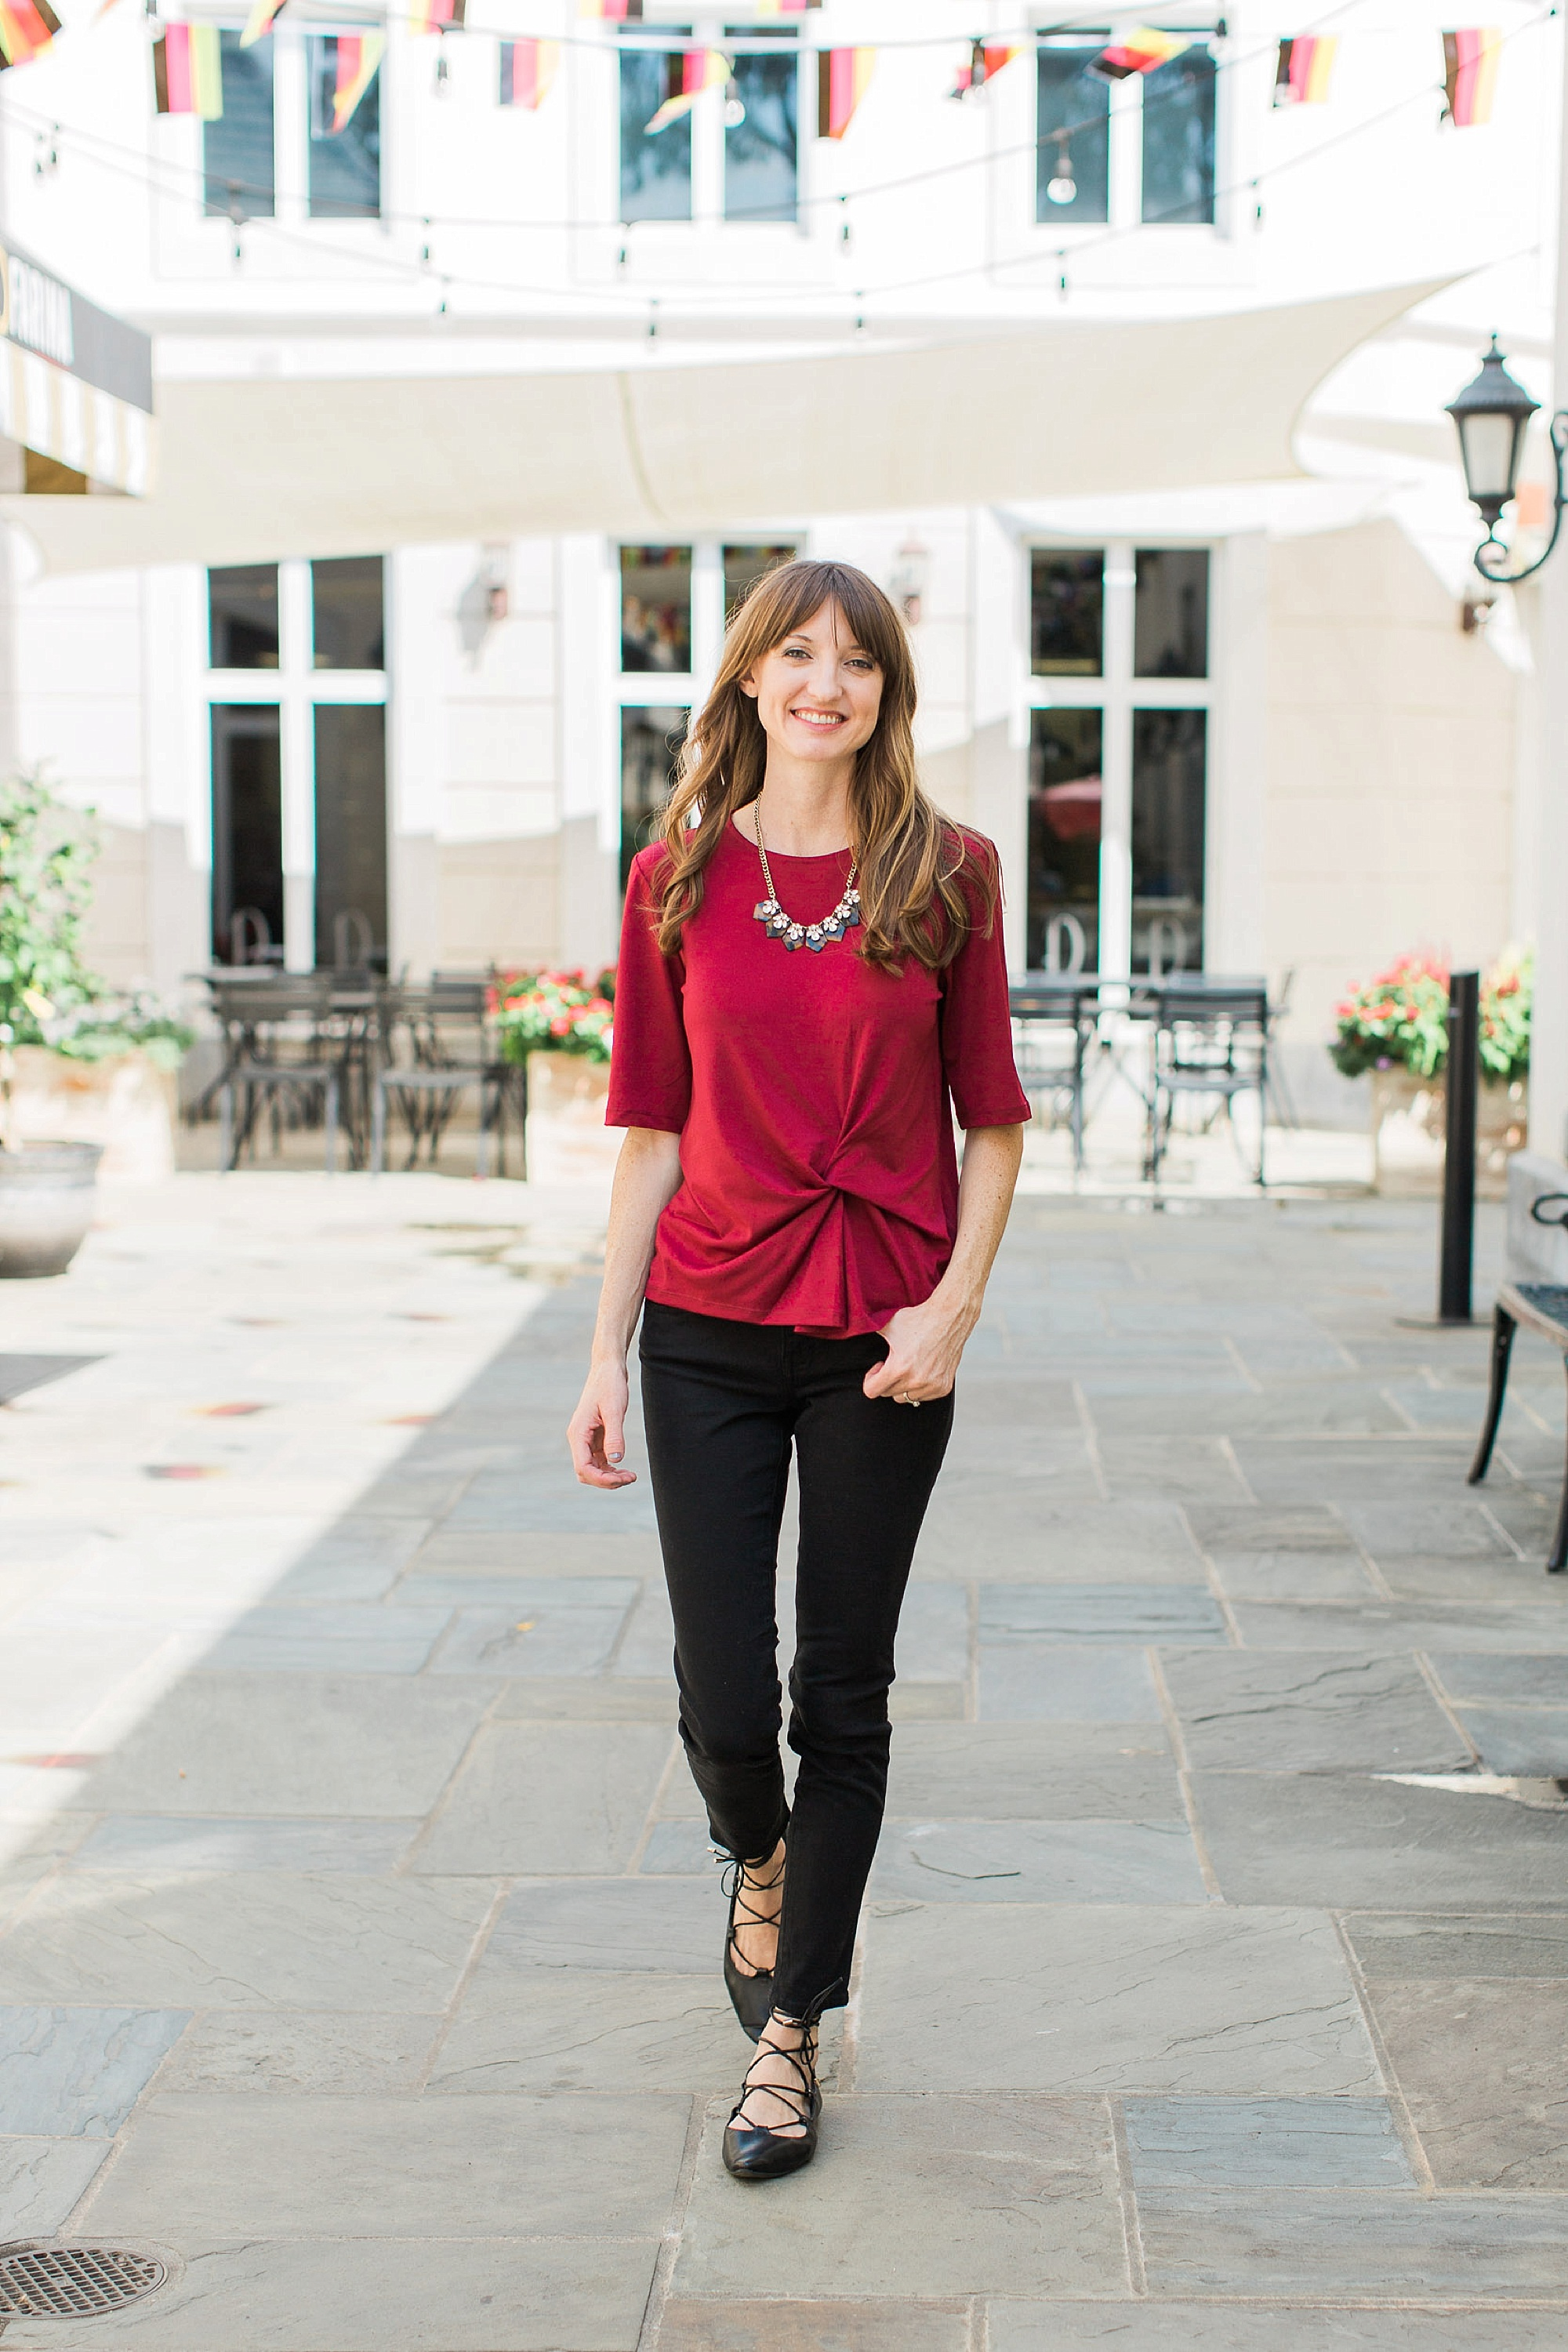 """TOP: Topshop (similar   here  ,   here  , and   here  ); JEANS:   Madewell  ; SHOES:   Old Navy  (on sale for under $20!); NECKLACE:   J Crew   (on sale!); LIPS:  MAC Lip Pencil  in """"Whirl"""" and  MAC Lipstick  in """"Twig"""""""